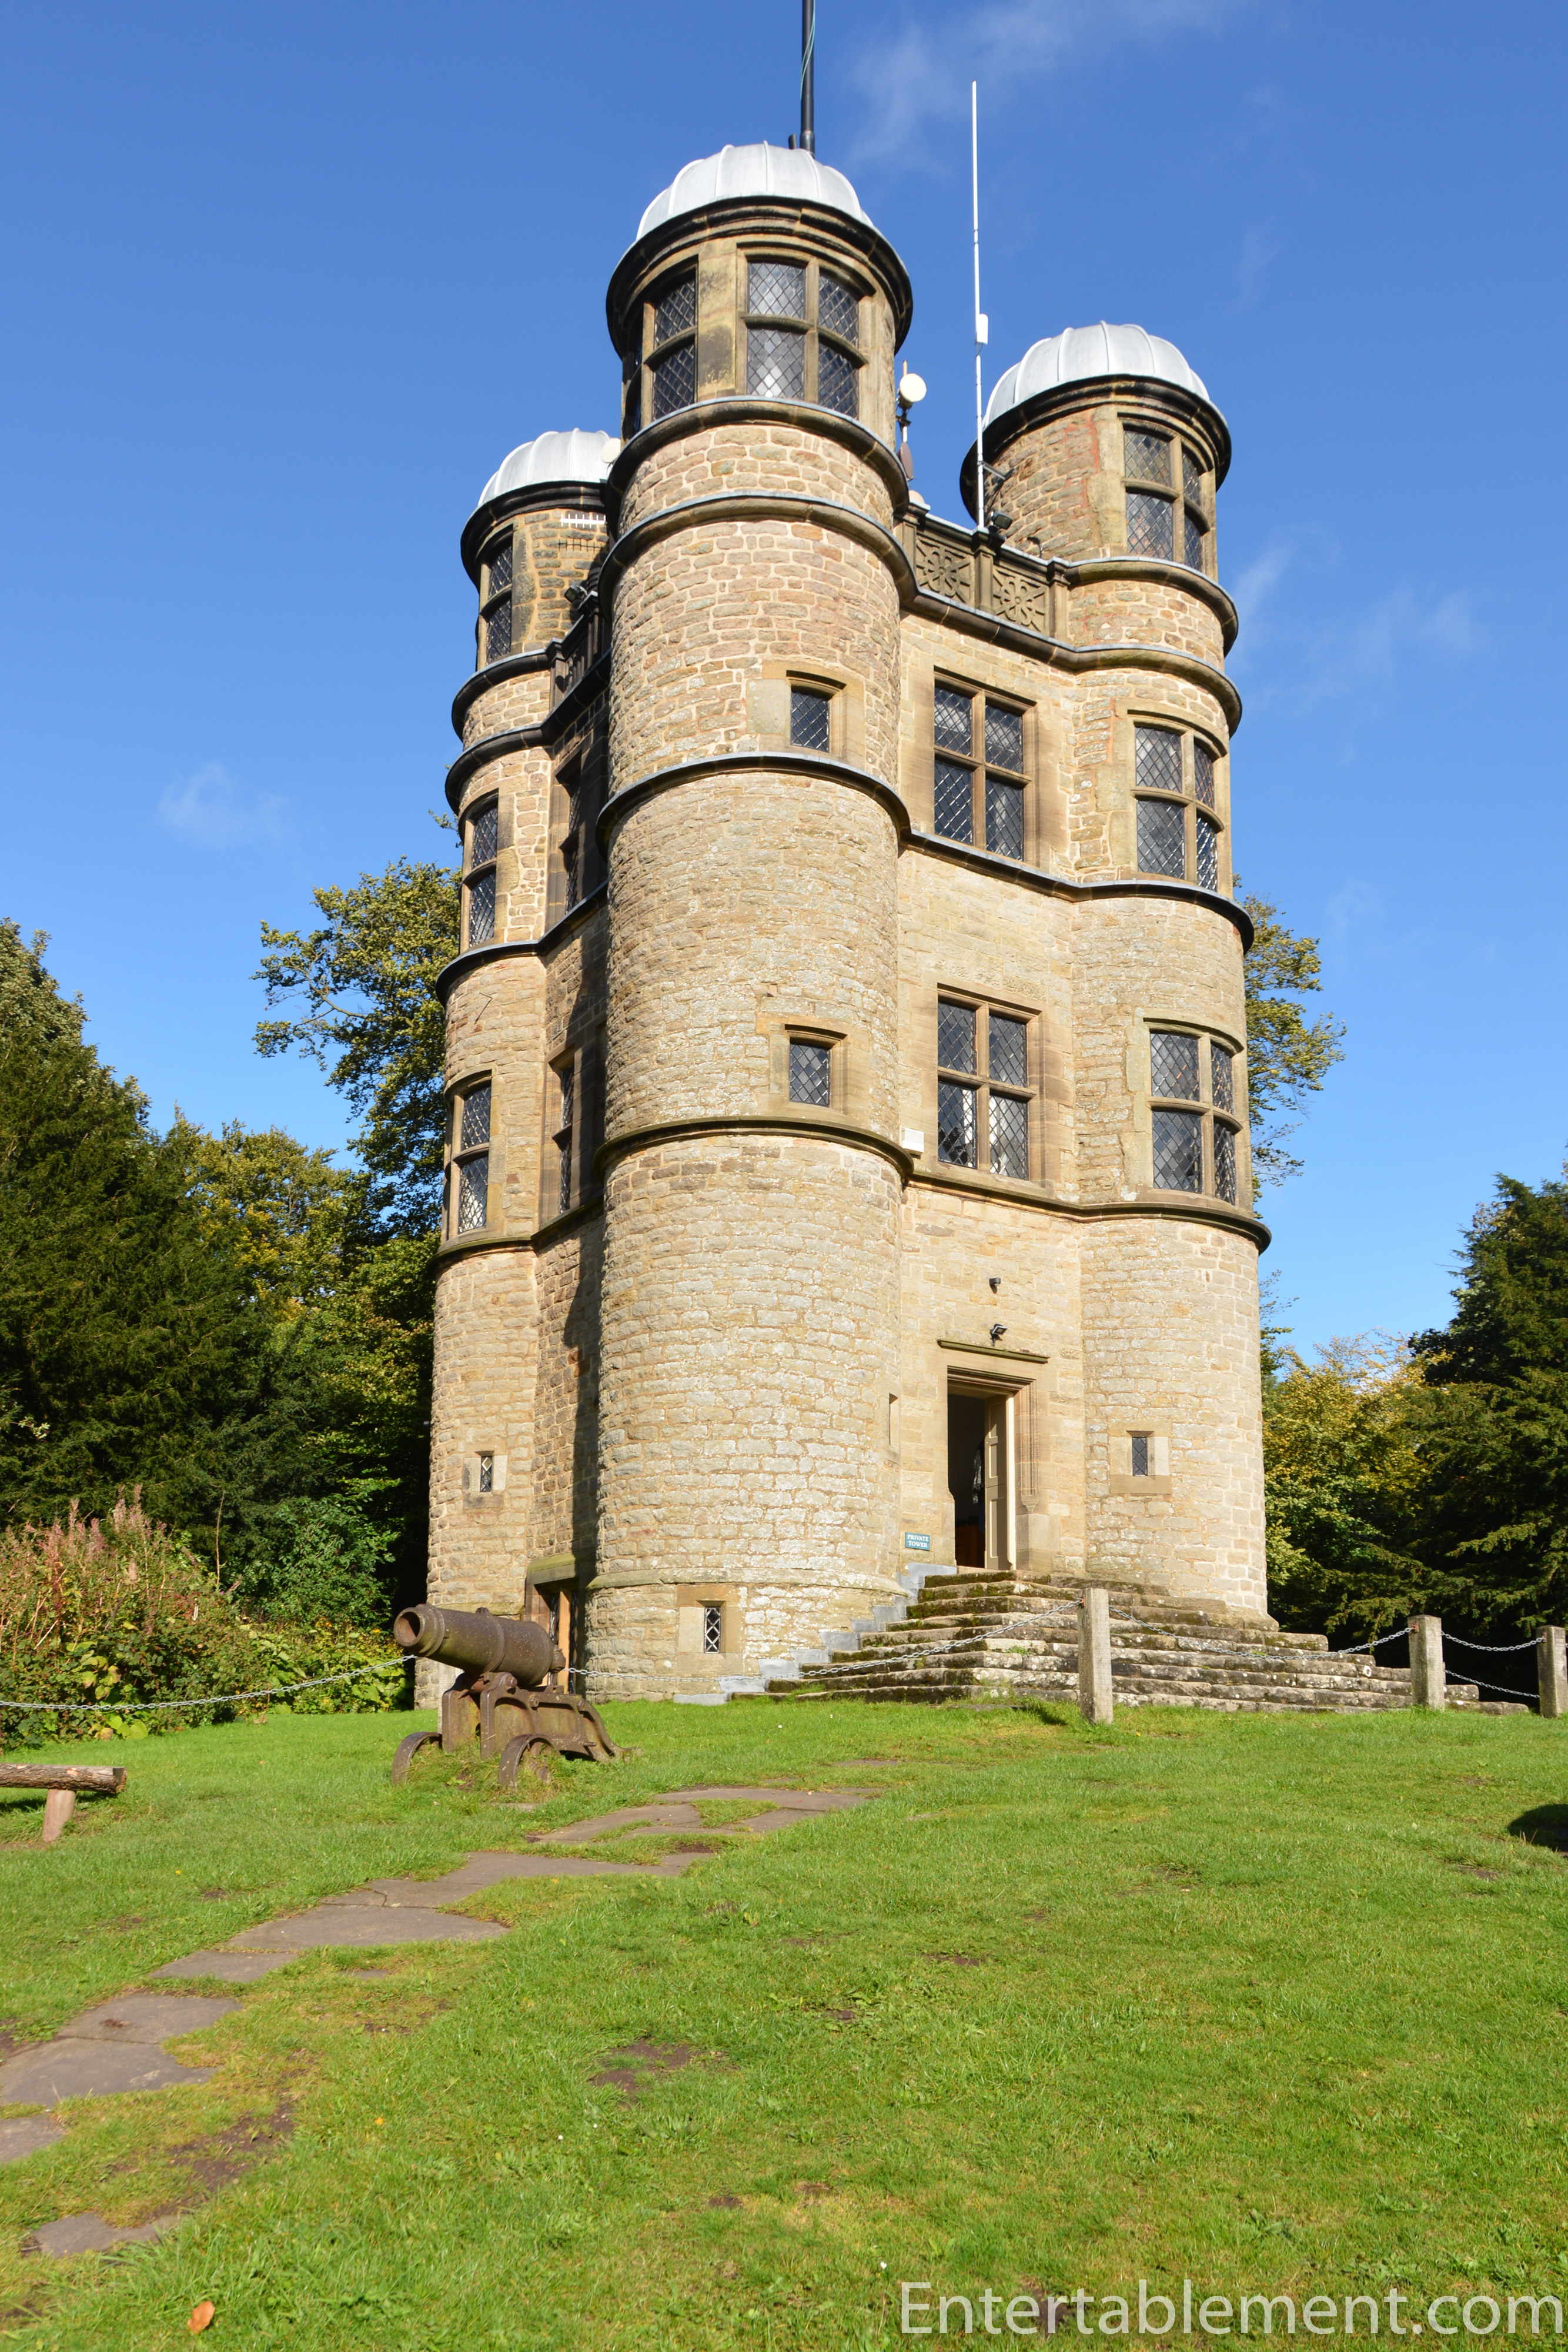 Chatsworth House Room: Entertablement Abroad: The Hunting Tower, Chatsworth